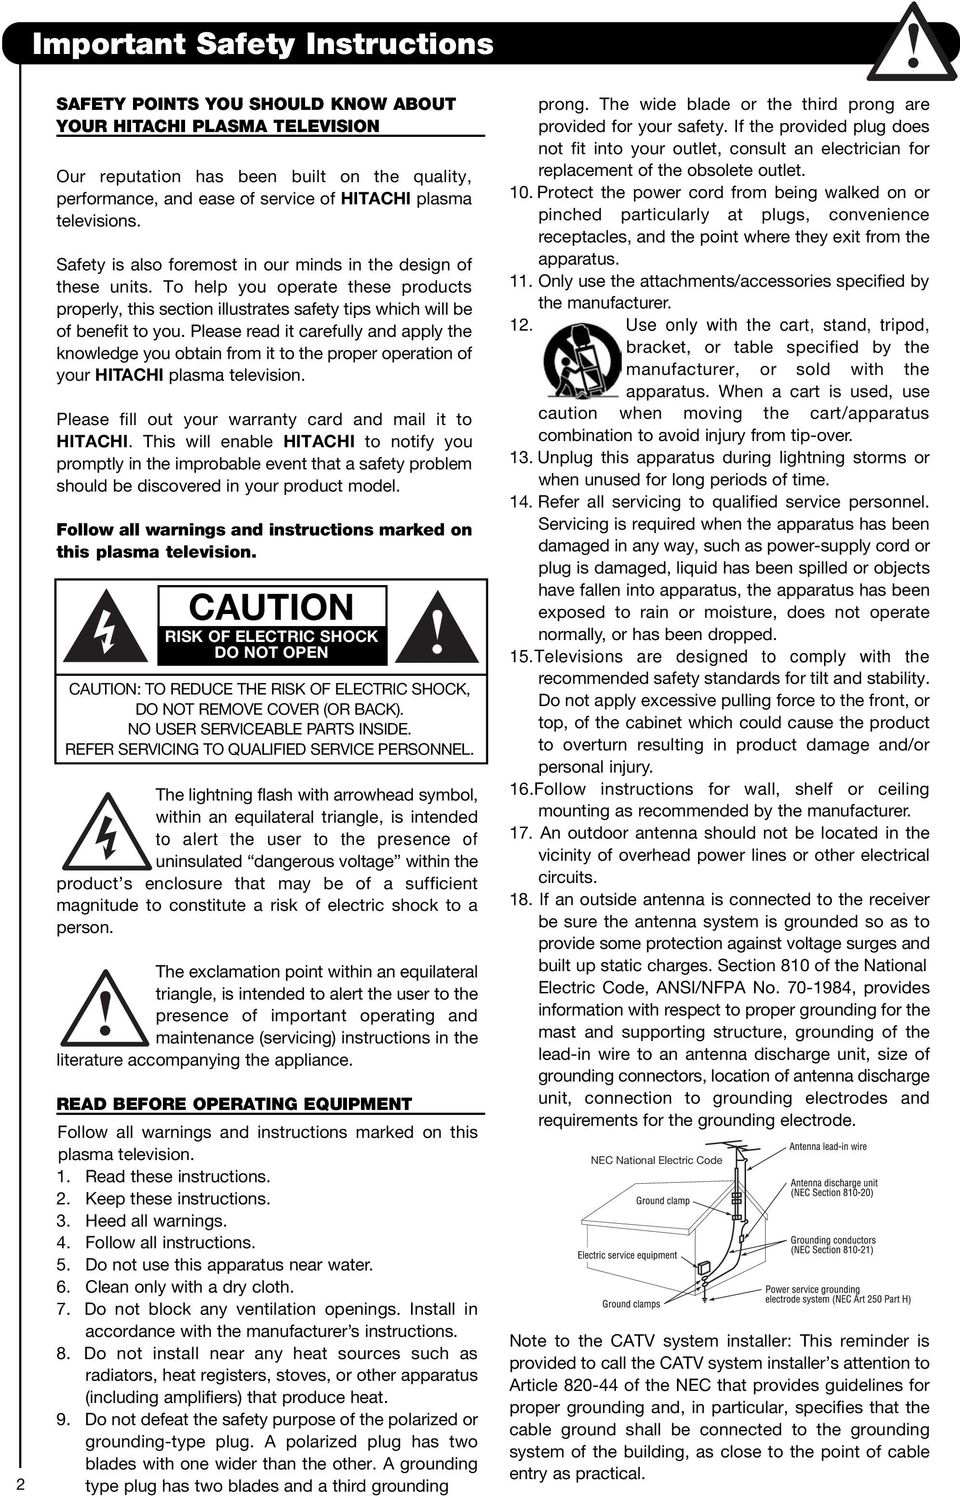 Please read it carefully and apply the knowledge you obtain from it to the proper operation of your HITACHI plasma television. Please fill out your warranty card and mail it to HITACHI.